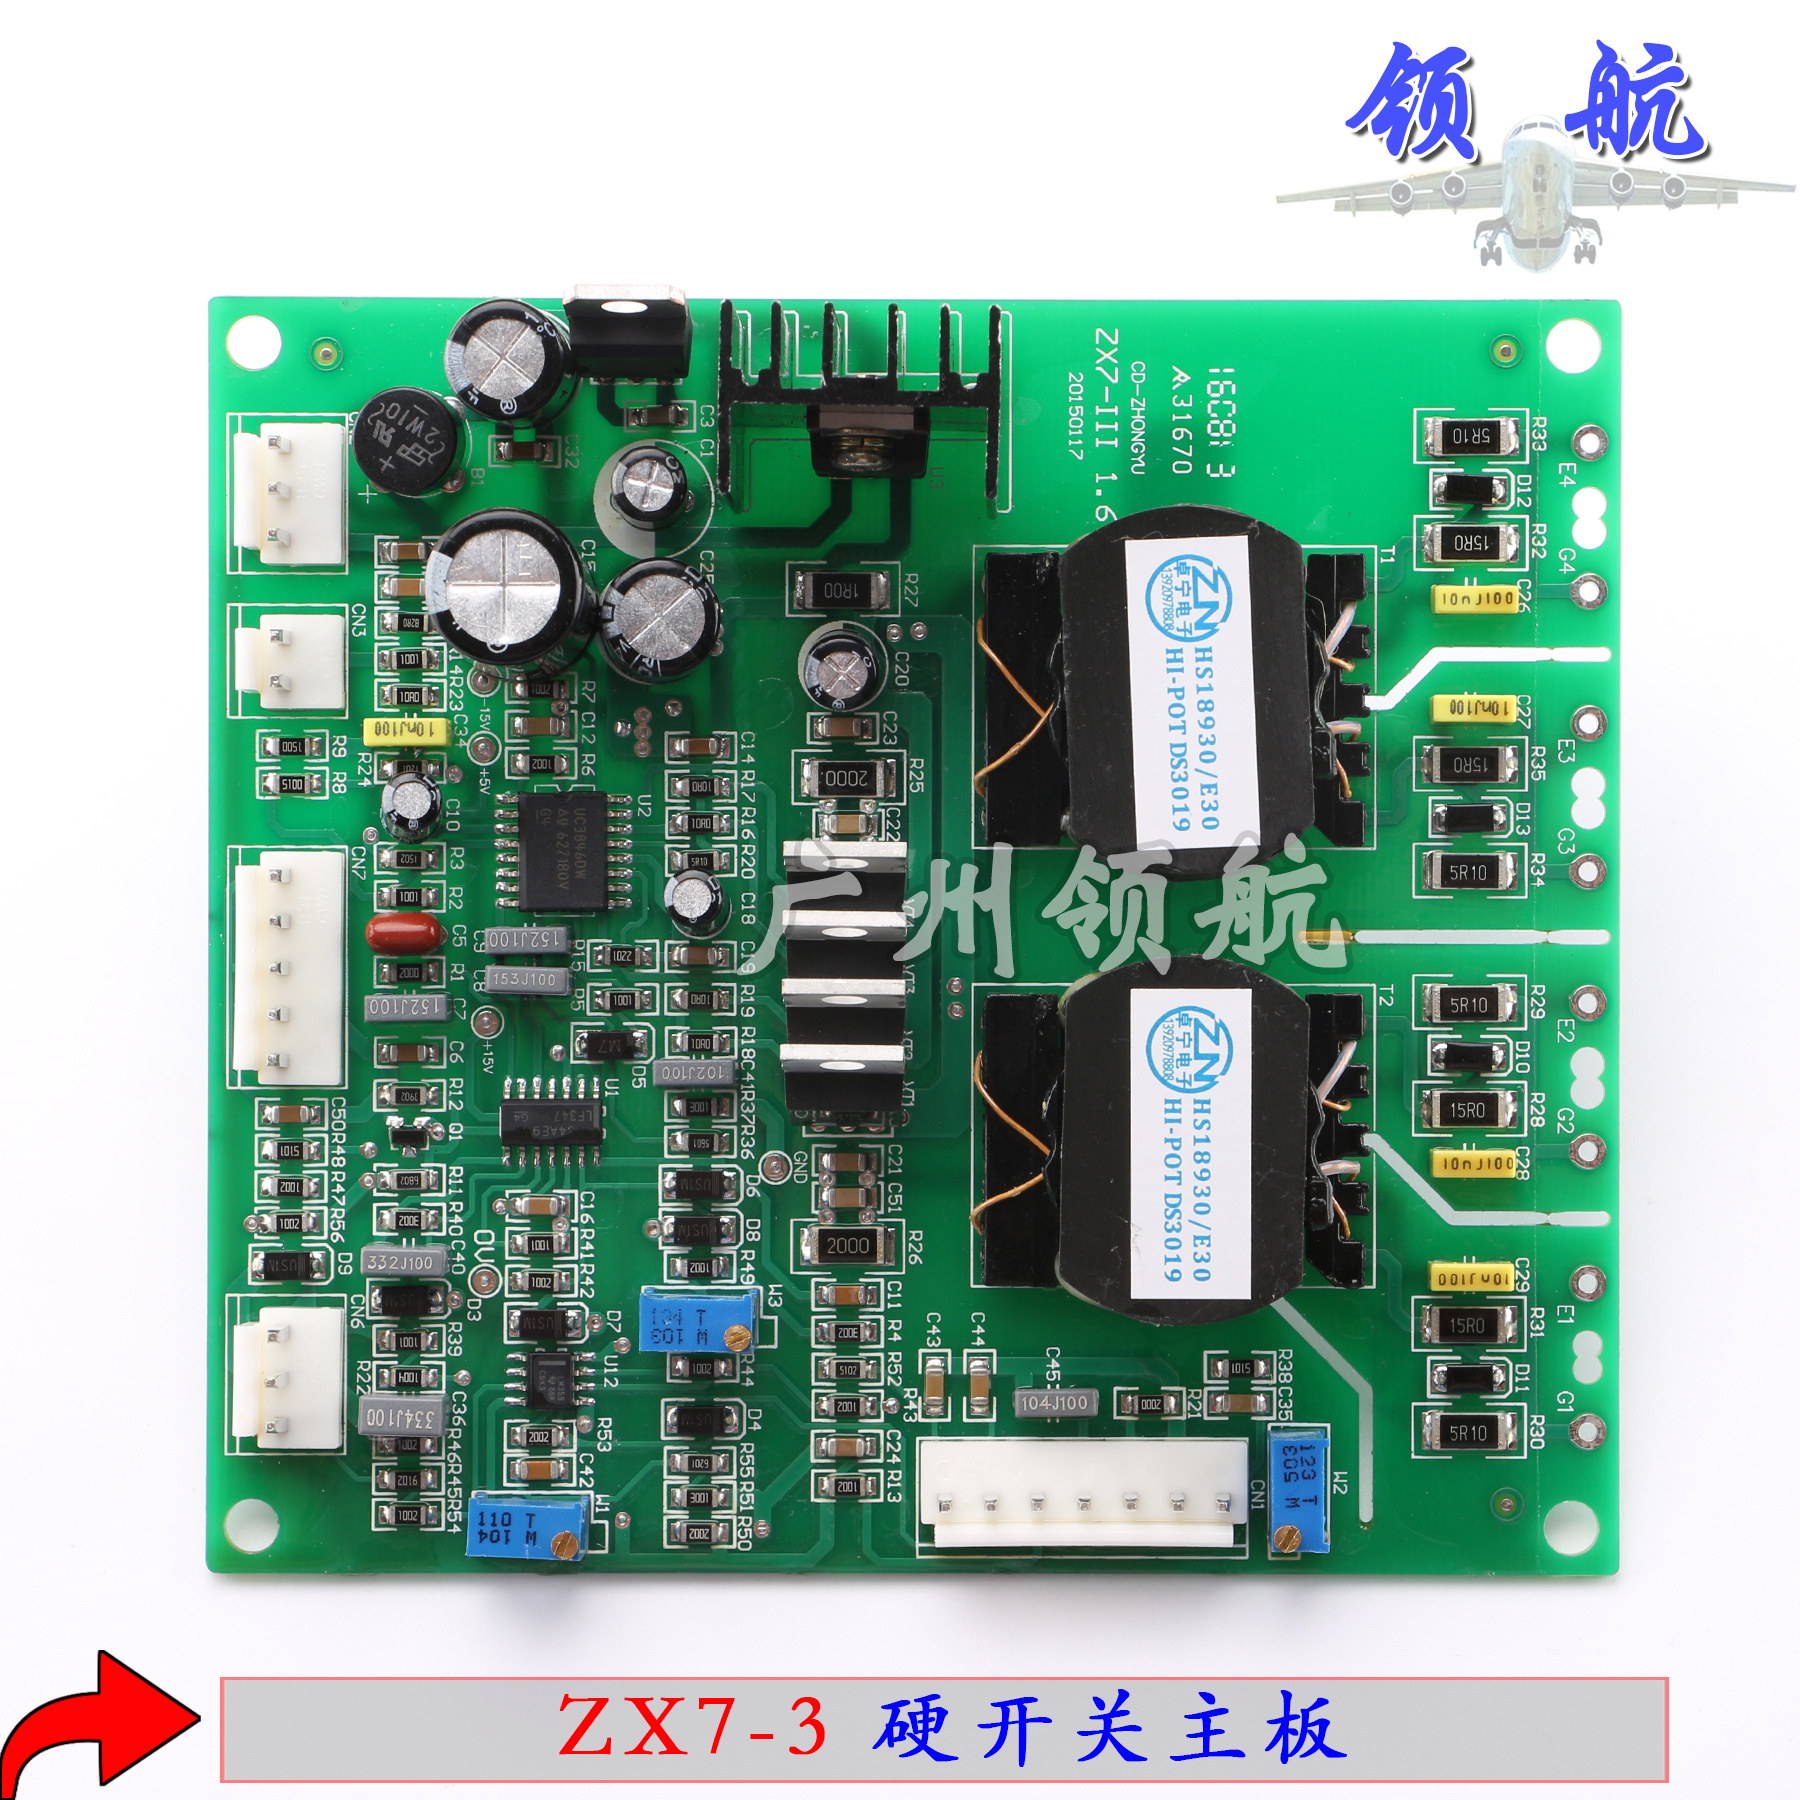 Air Conditioning Appliance Parts Latest Collection Of Double Voltage Inverter Welding Machine 3843 Switch Power Small Vertical Plate Welder Control Panel